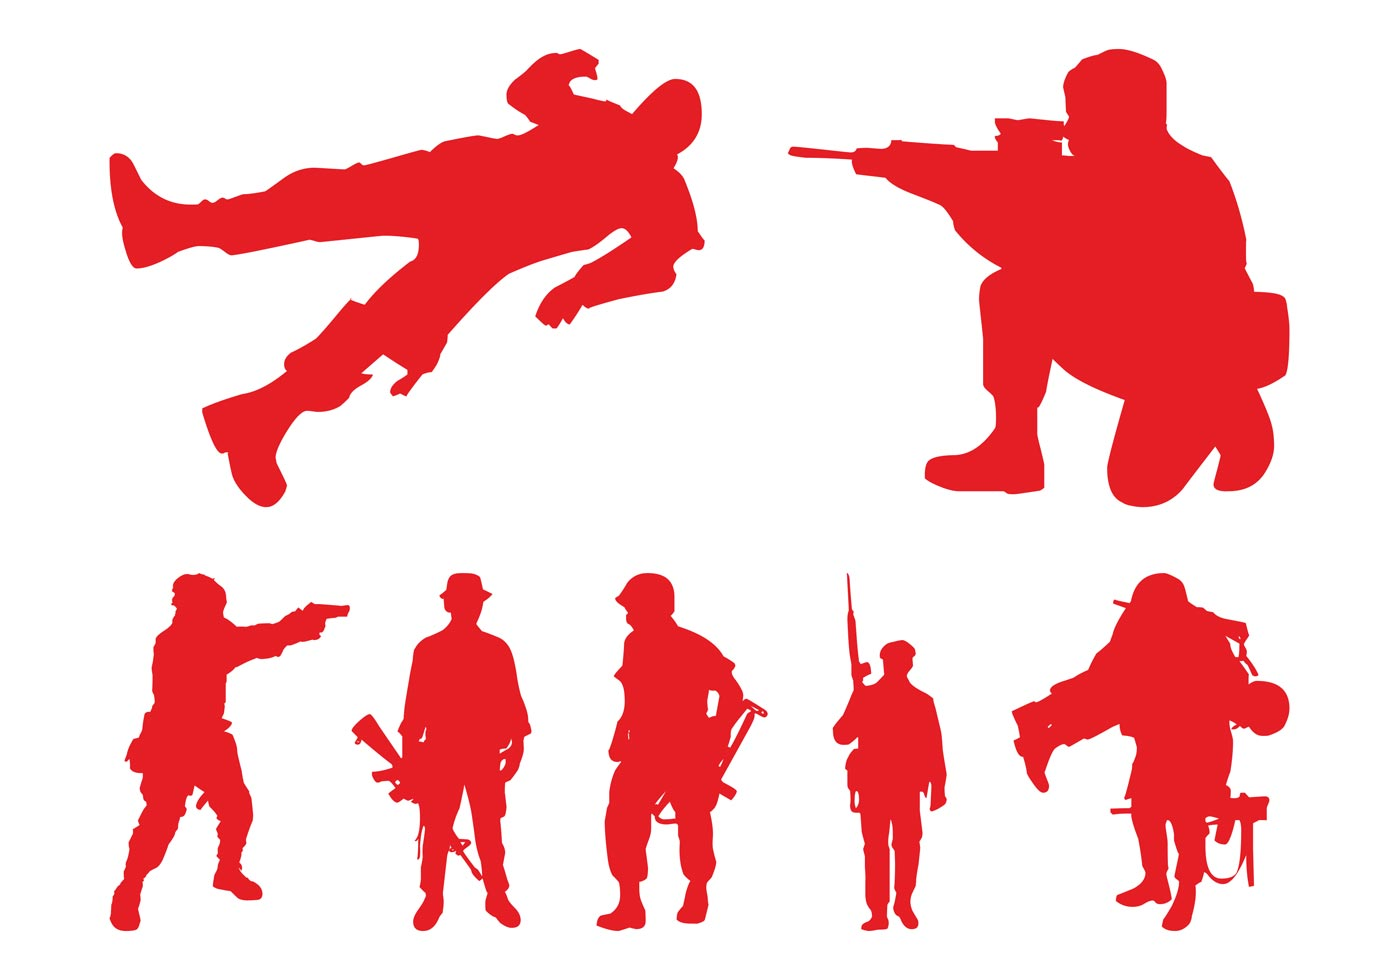 1400x980 Silhouettes Of Soldiers